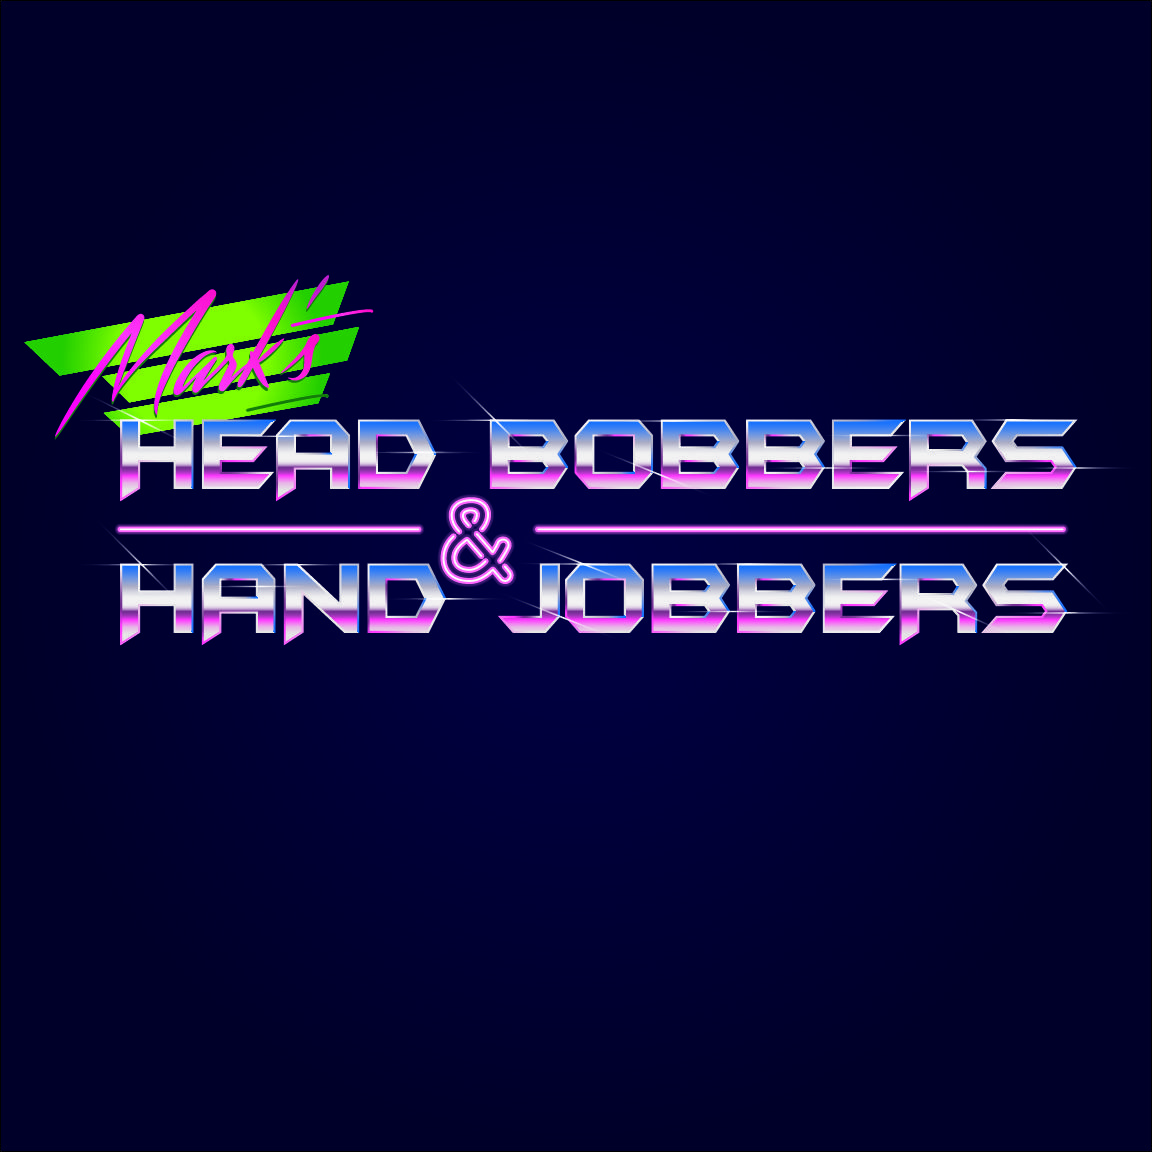 Marks Head Bobbers And Hand Bobbers